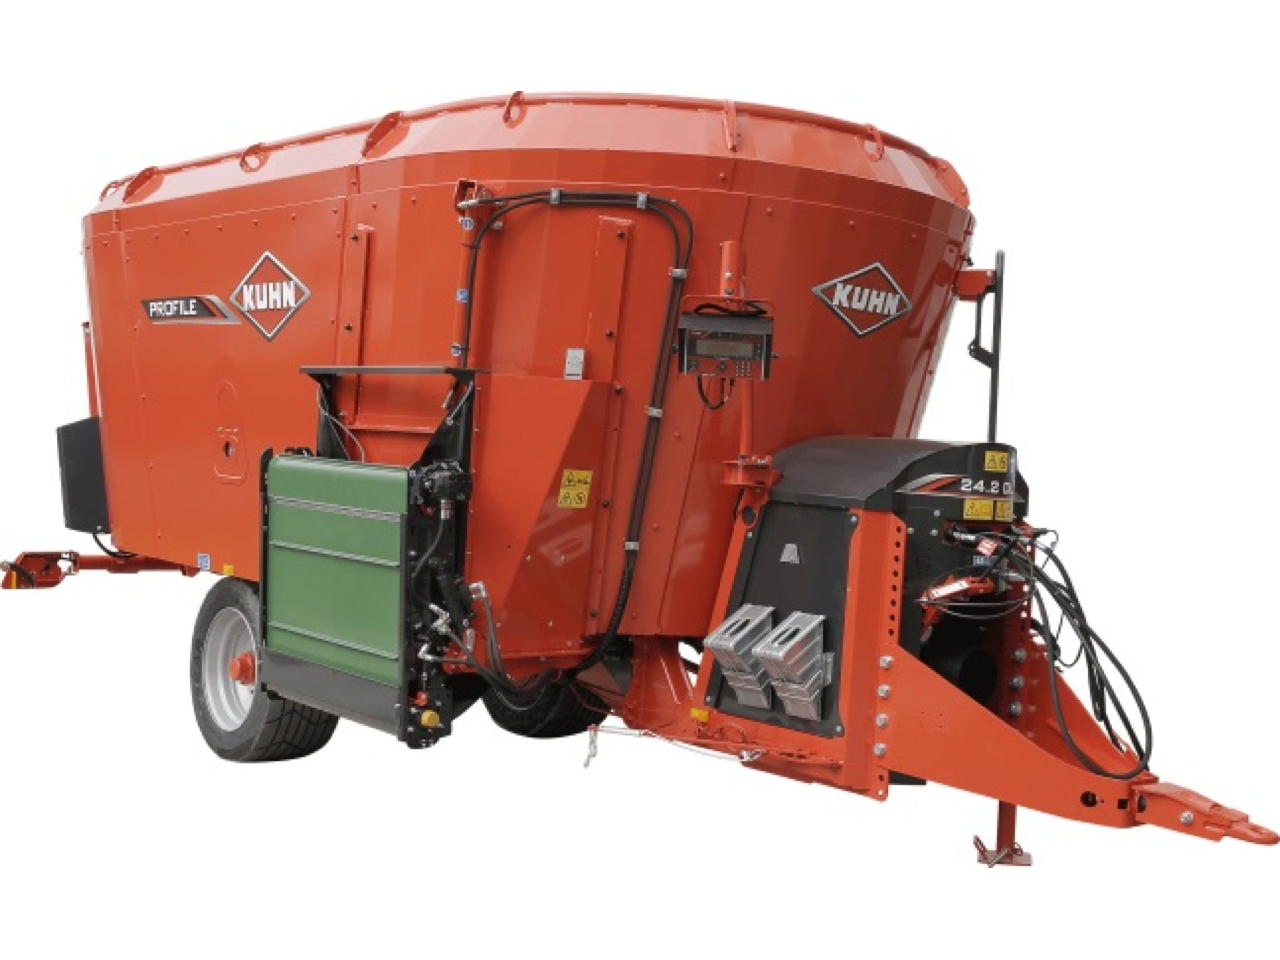 Kuhn Profile 2 DL Profile 34.2 DL